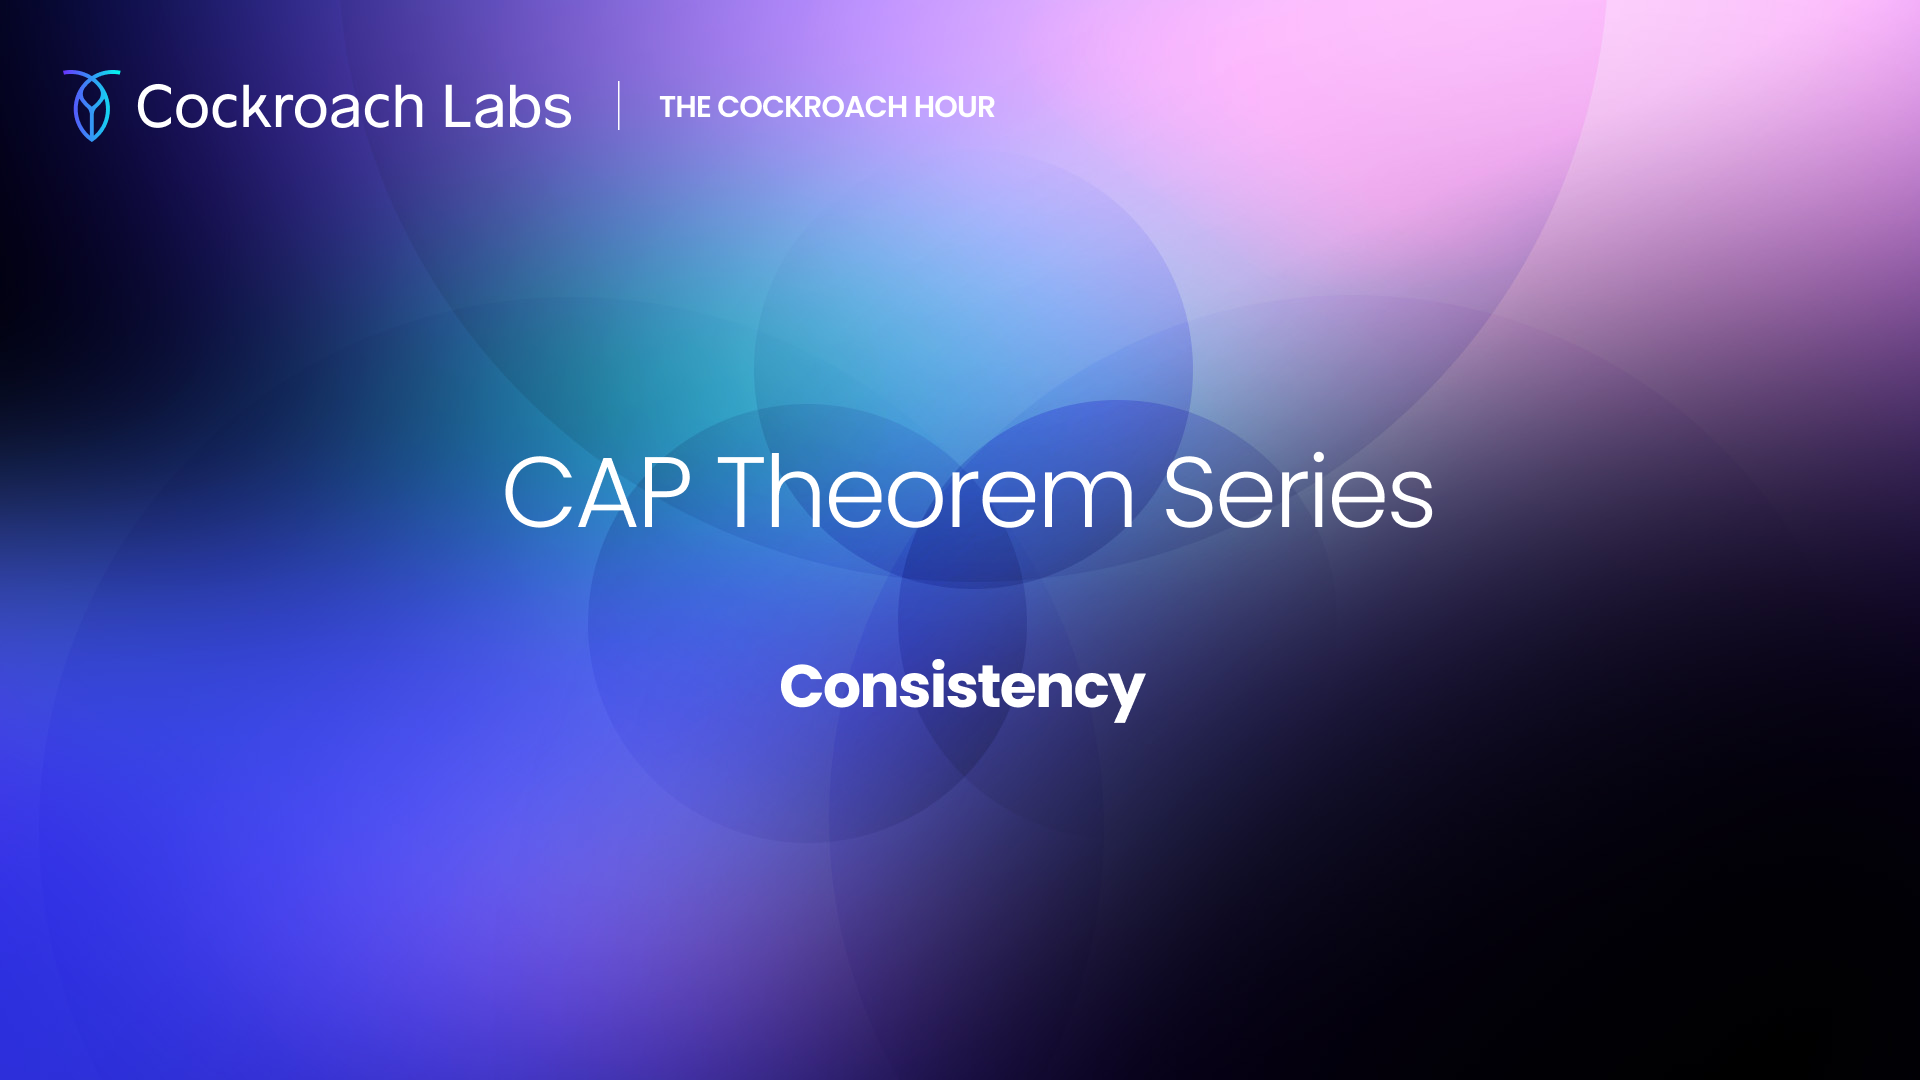 The Cockroach Hour: CAP Theorem Series - Consistency